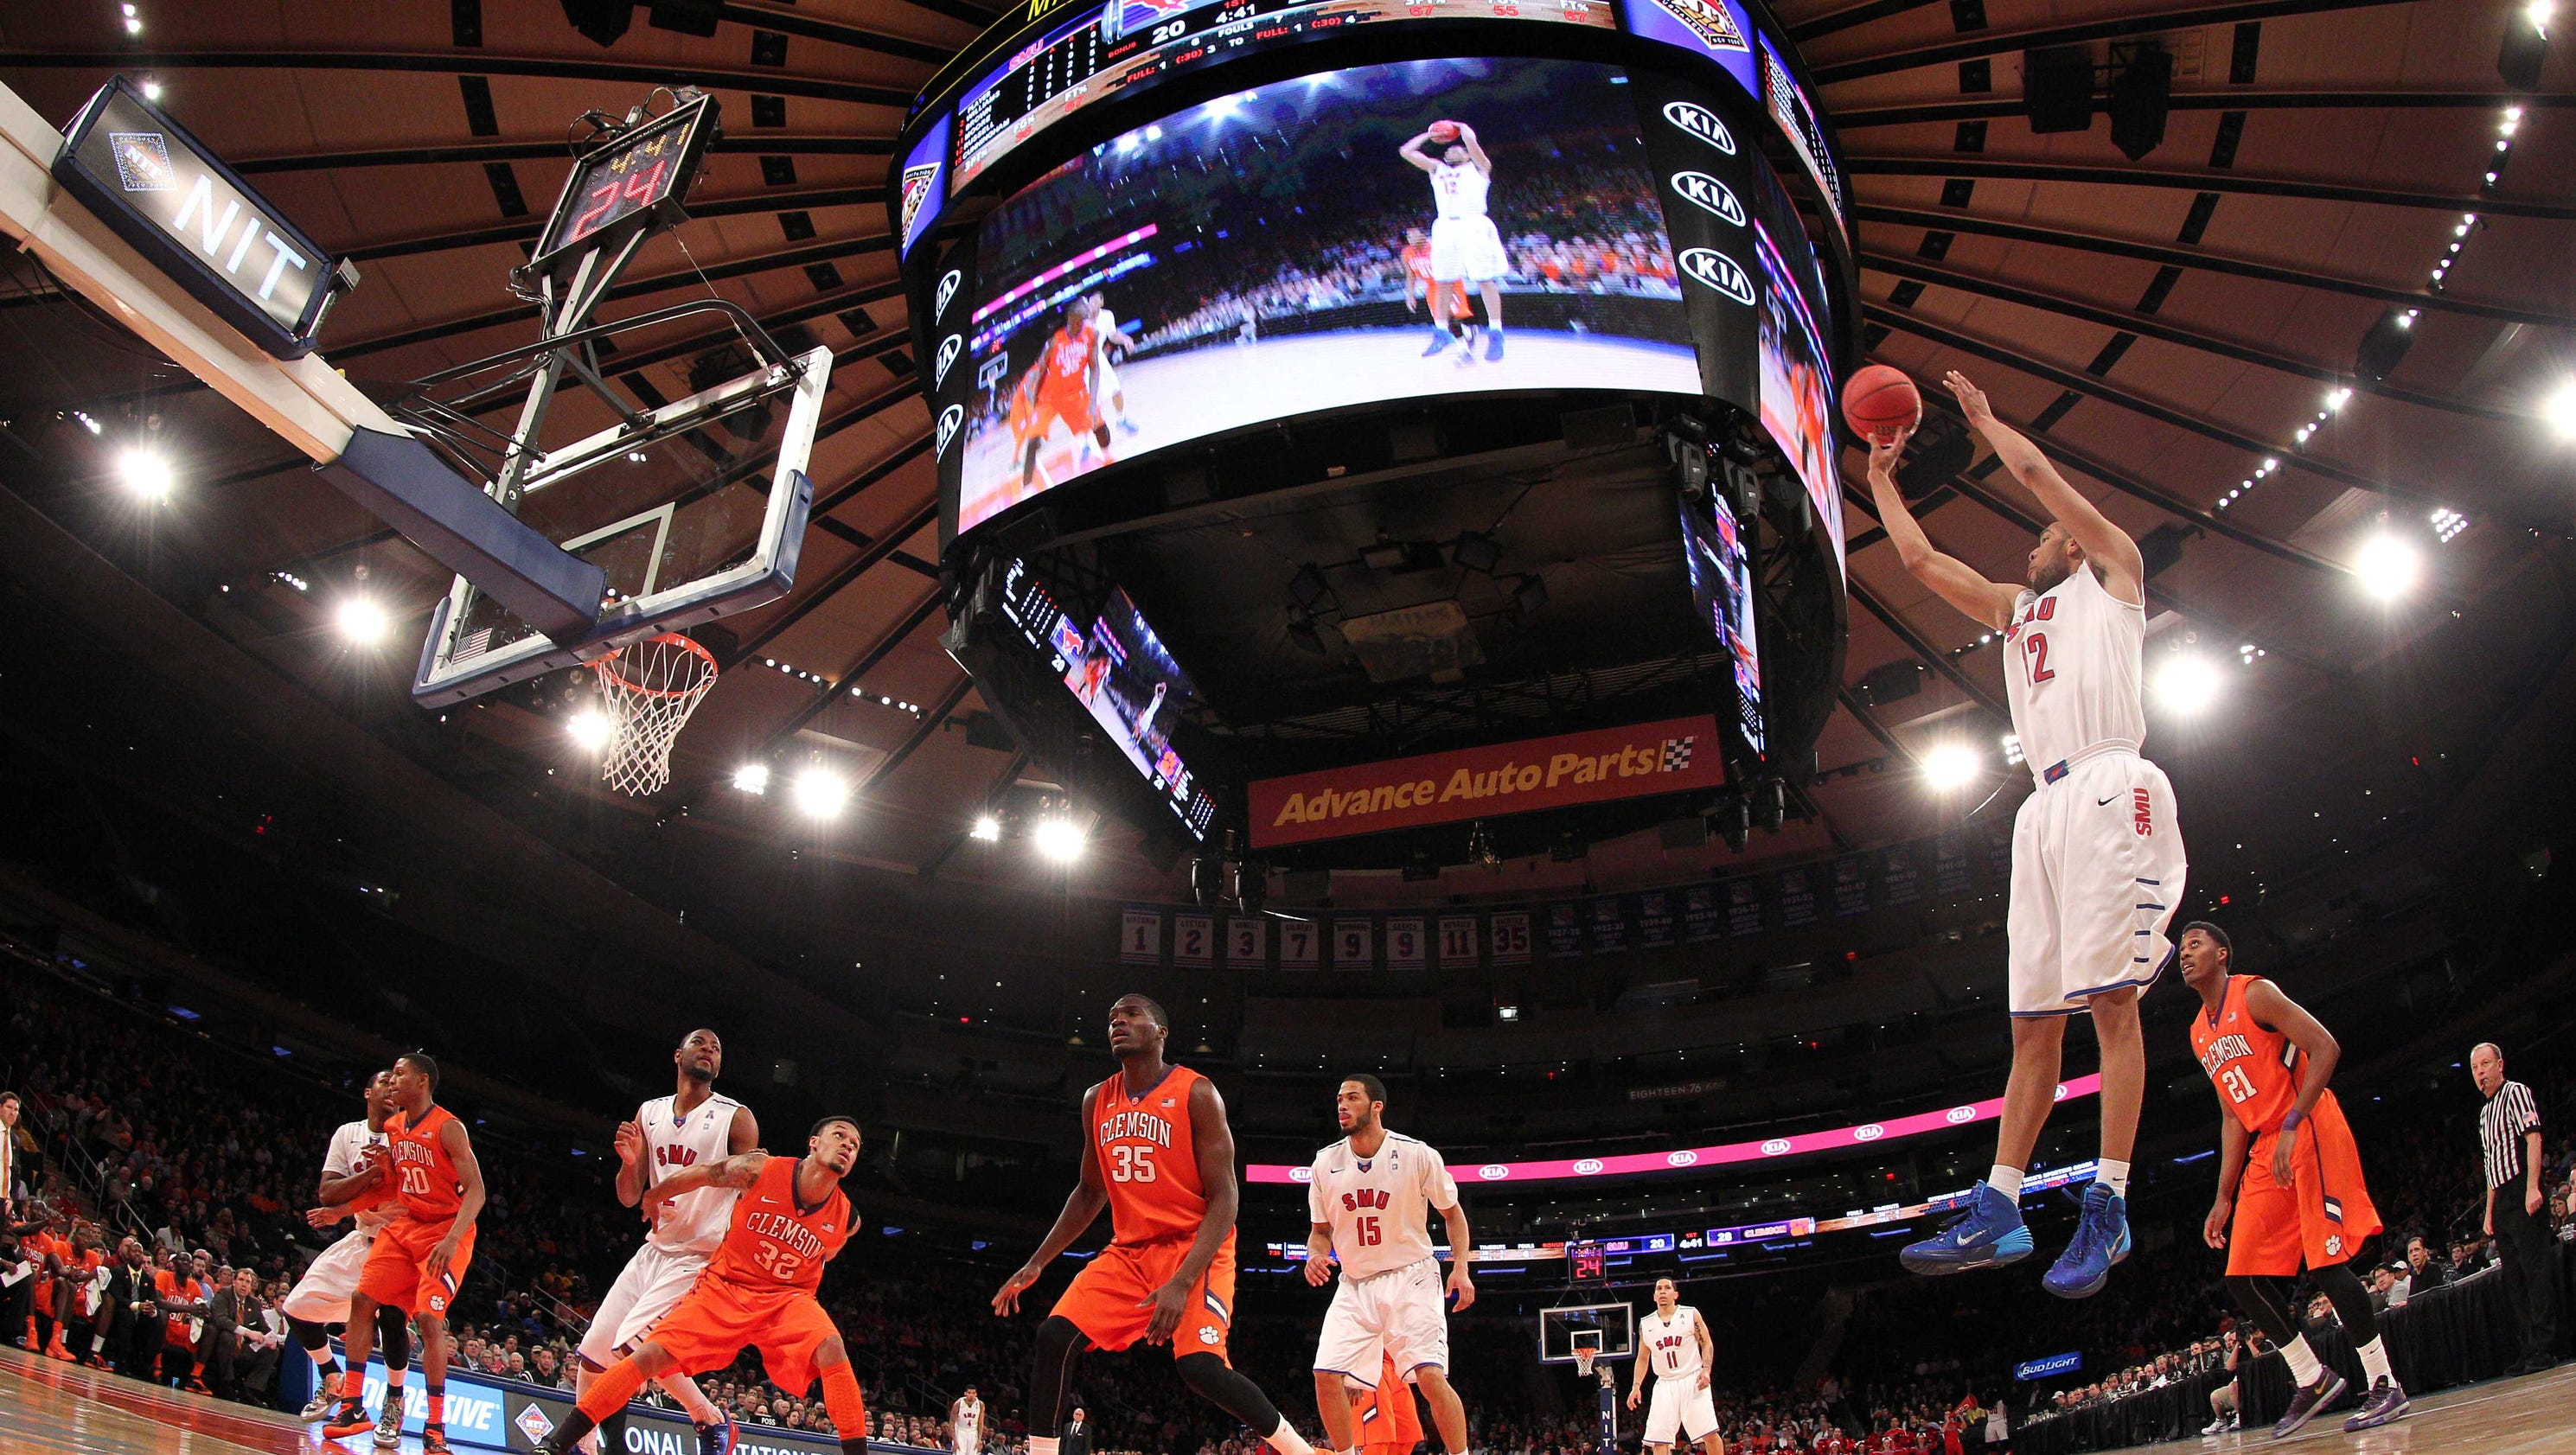 NIT to experiment with 30-second shot clock this season